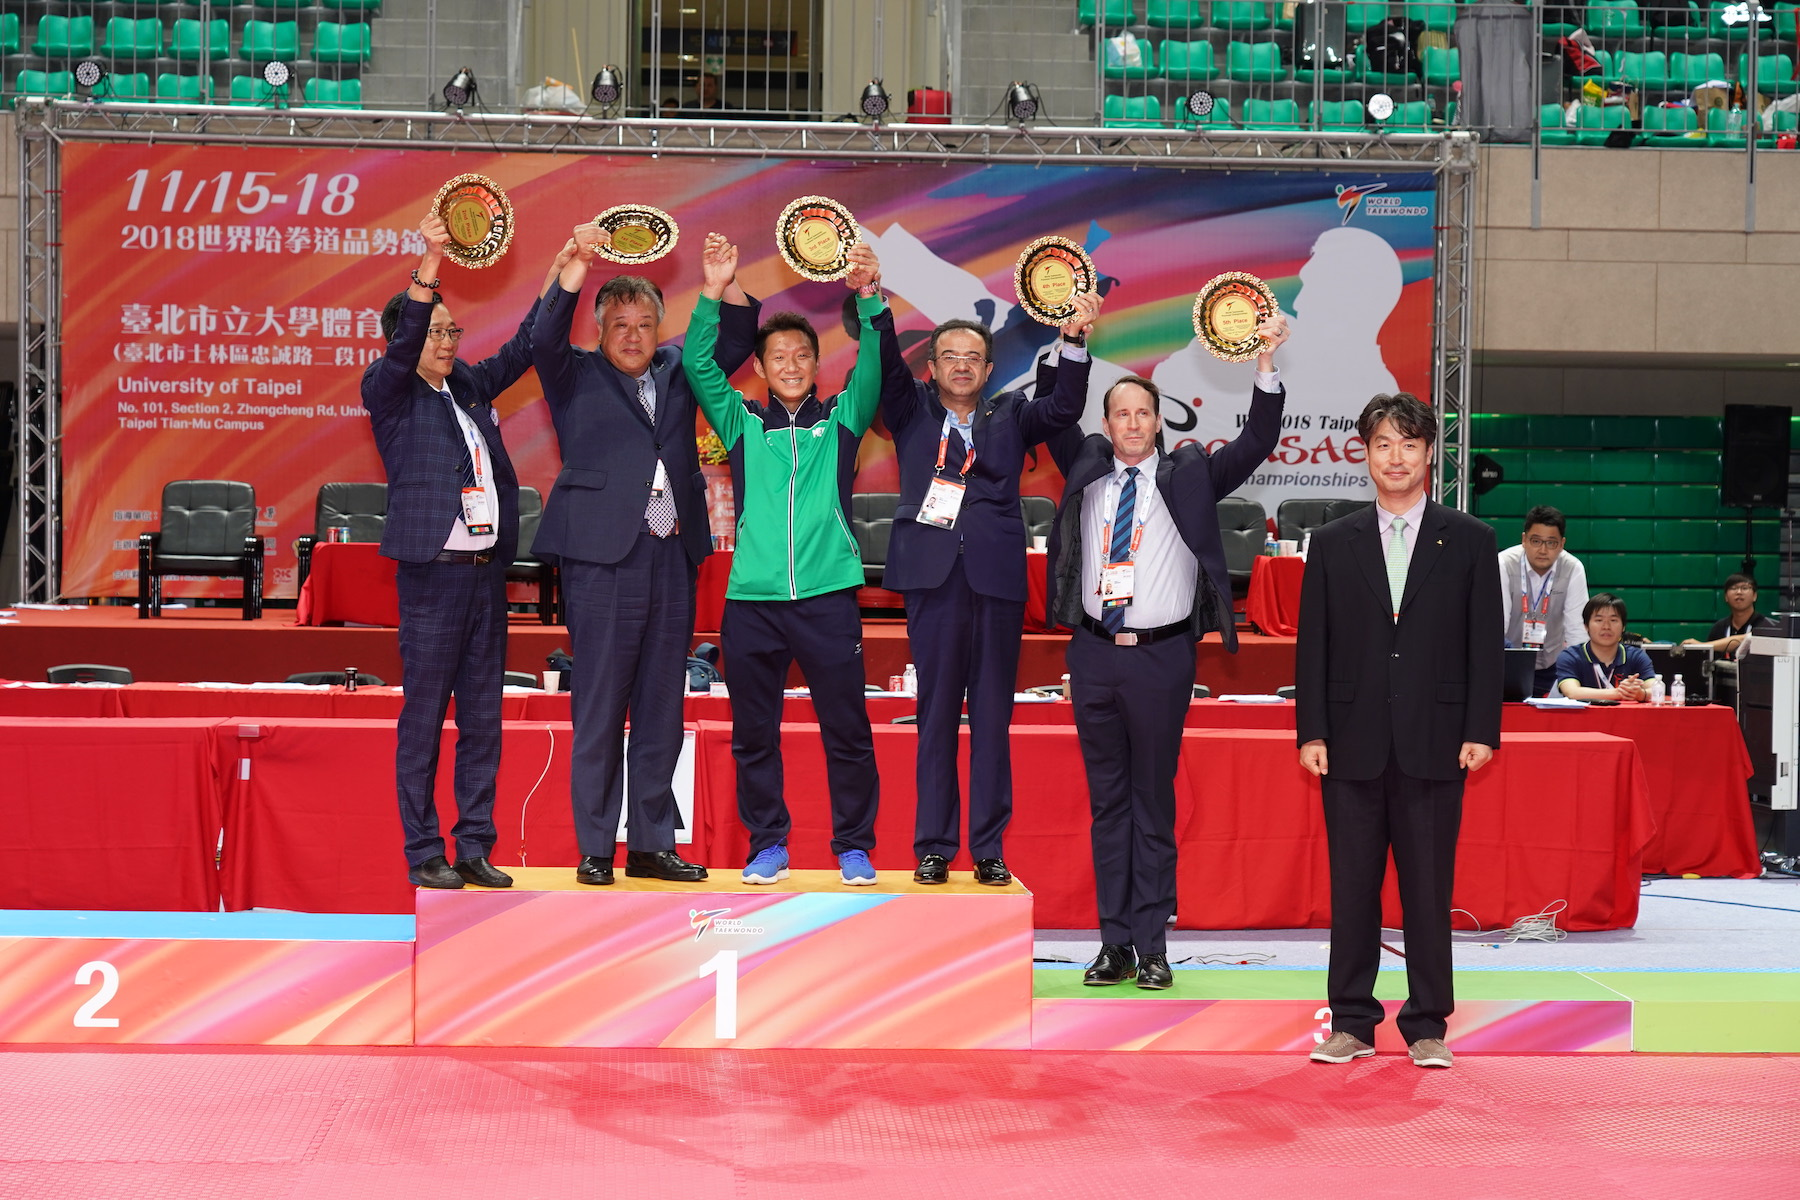 Awarding ceremony of best team at day 4 of Taipei 2018 World Taekwondo Poomsae Championships